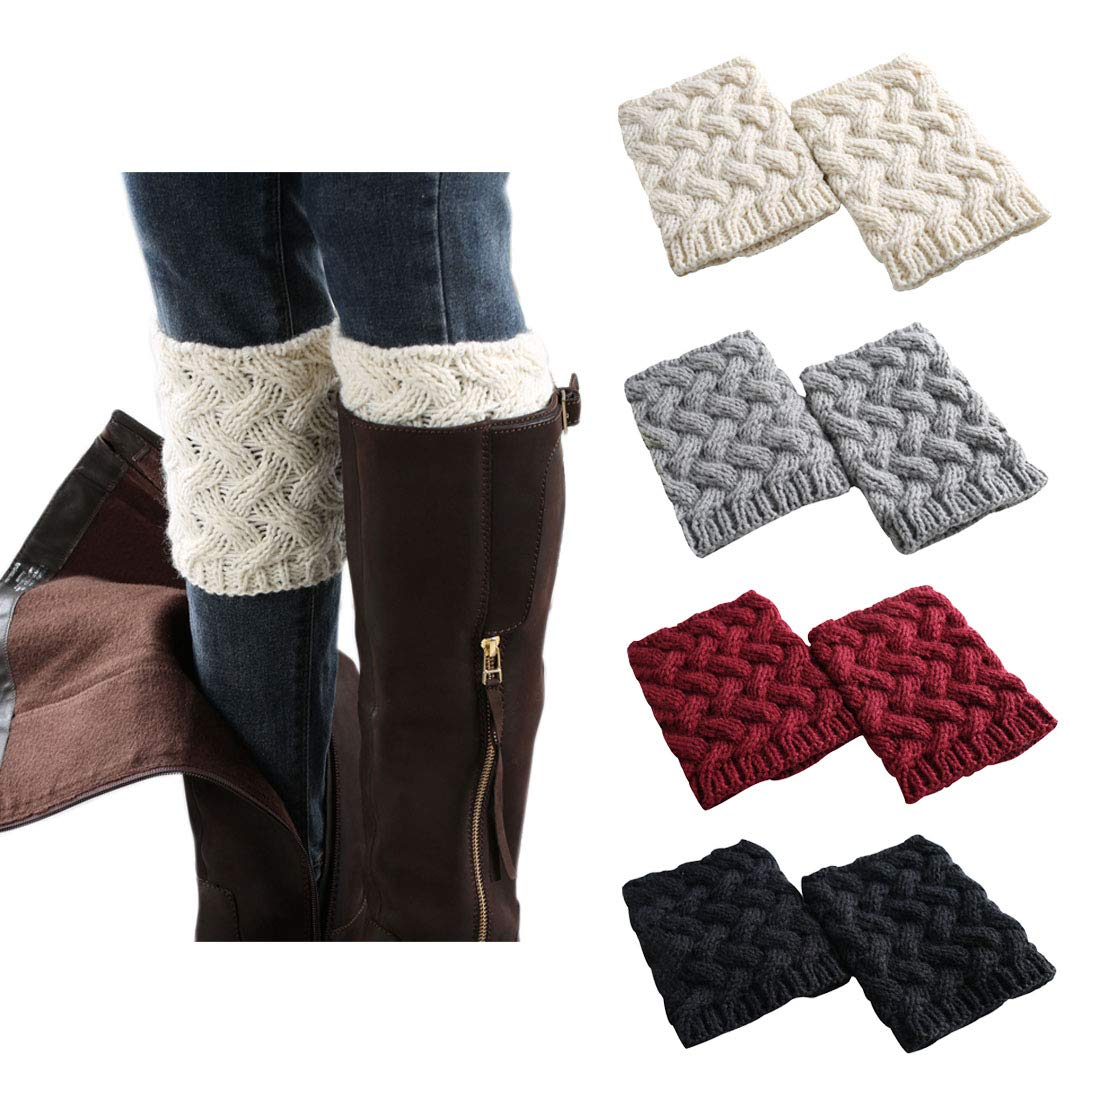 FAYBOX Short Women Crochet Boot Cuffs Winter Cable Knit Leg Warmers product  image 7209537b2a5e